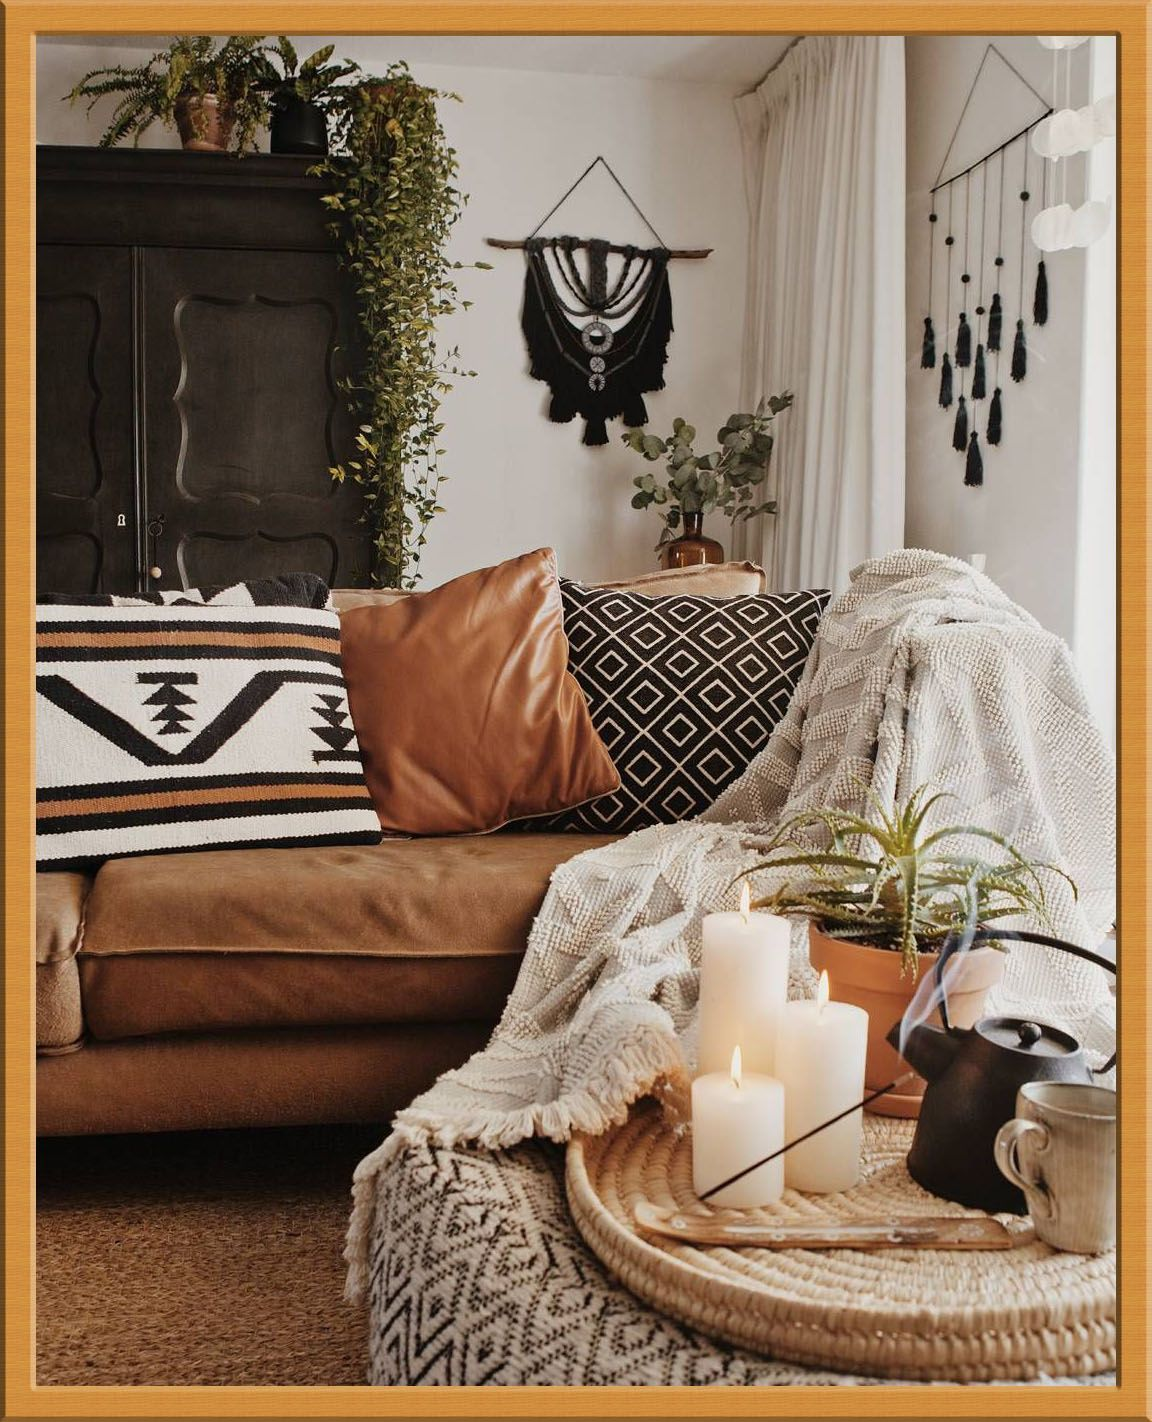 To People That Want To Start Bohemian Homedecor But Are Affraid To Get Started